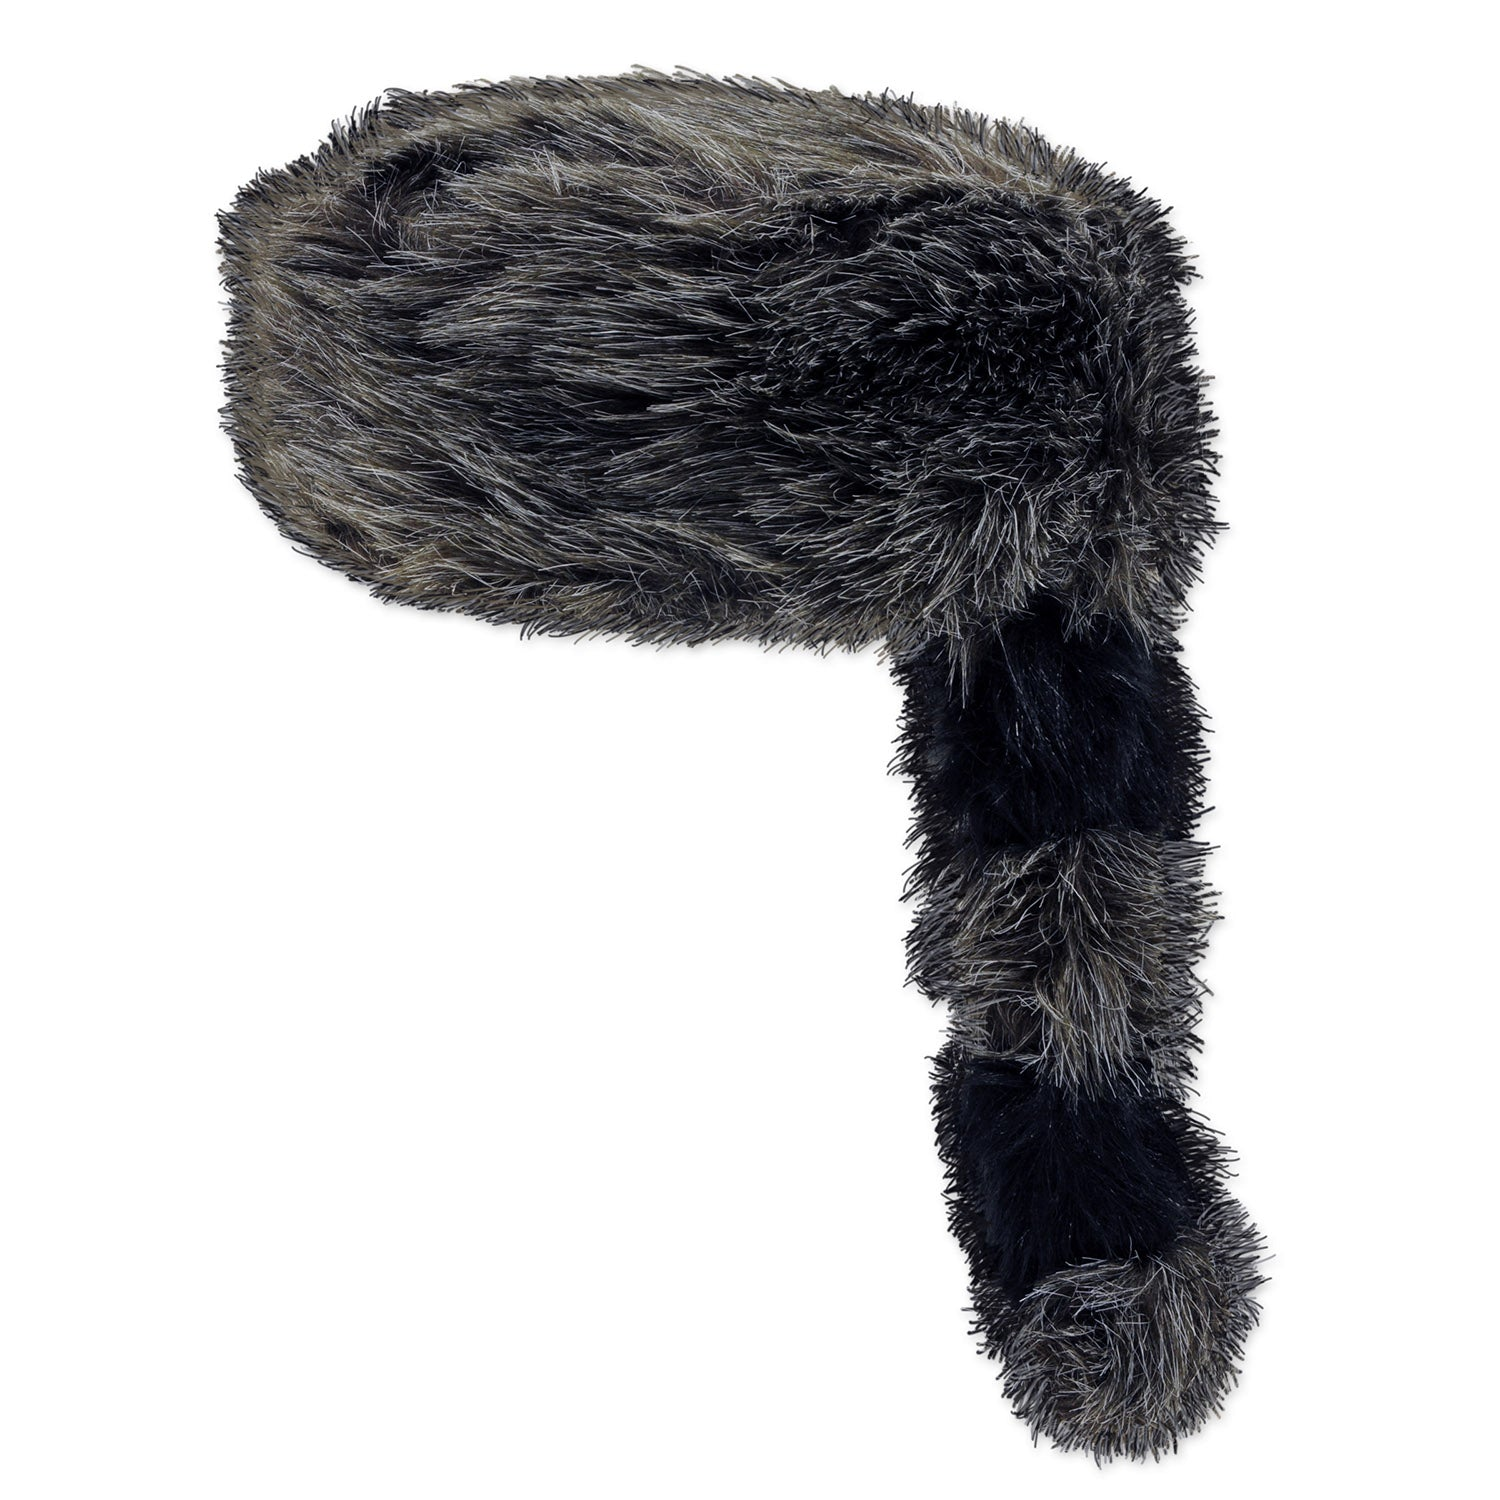 Coonskin Cap by Beistle - Western Theme Decorations